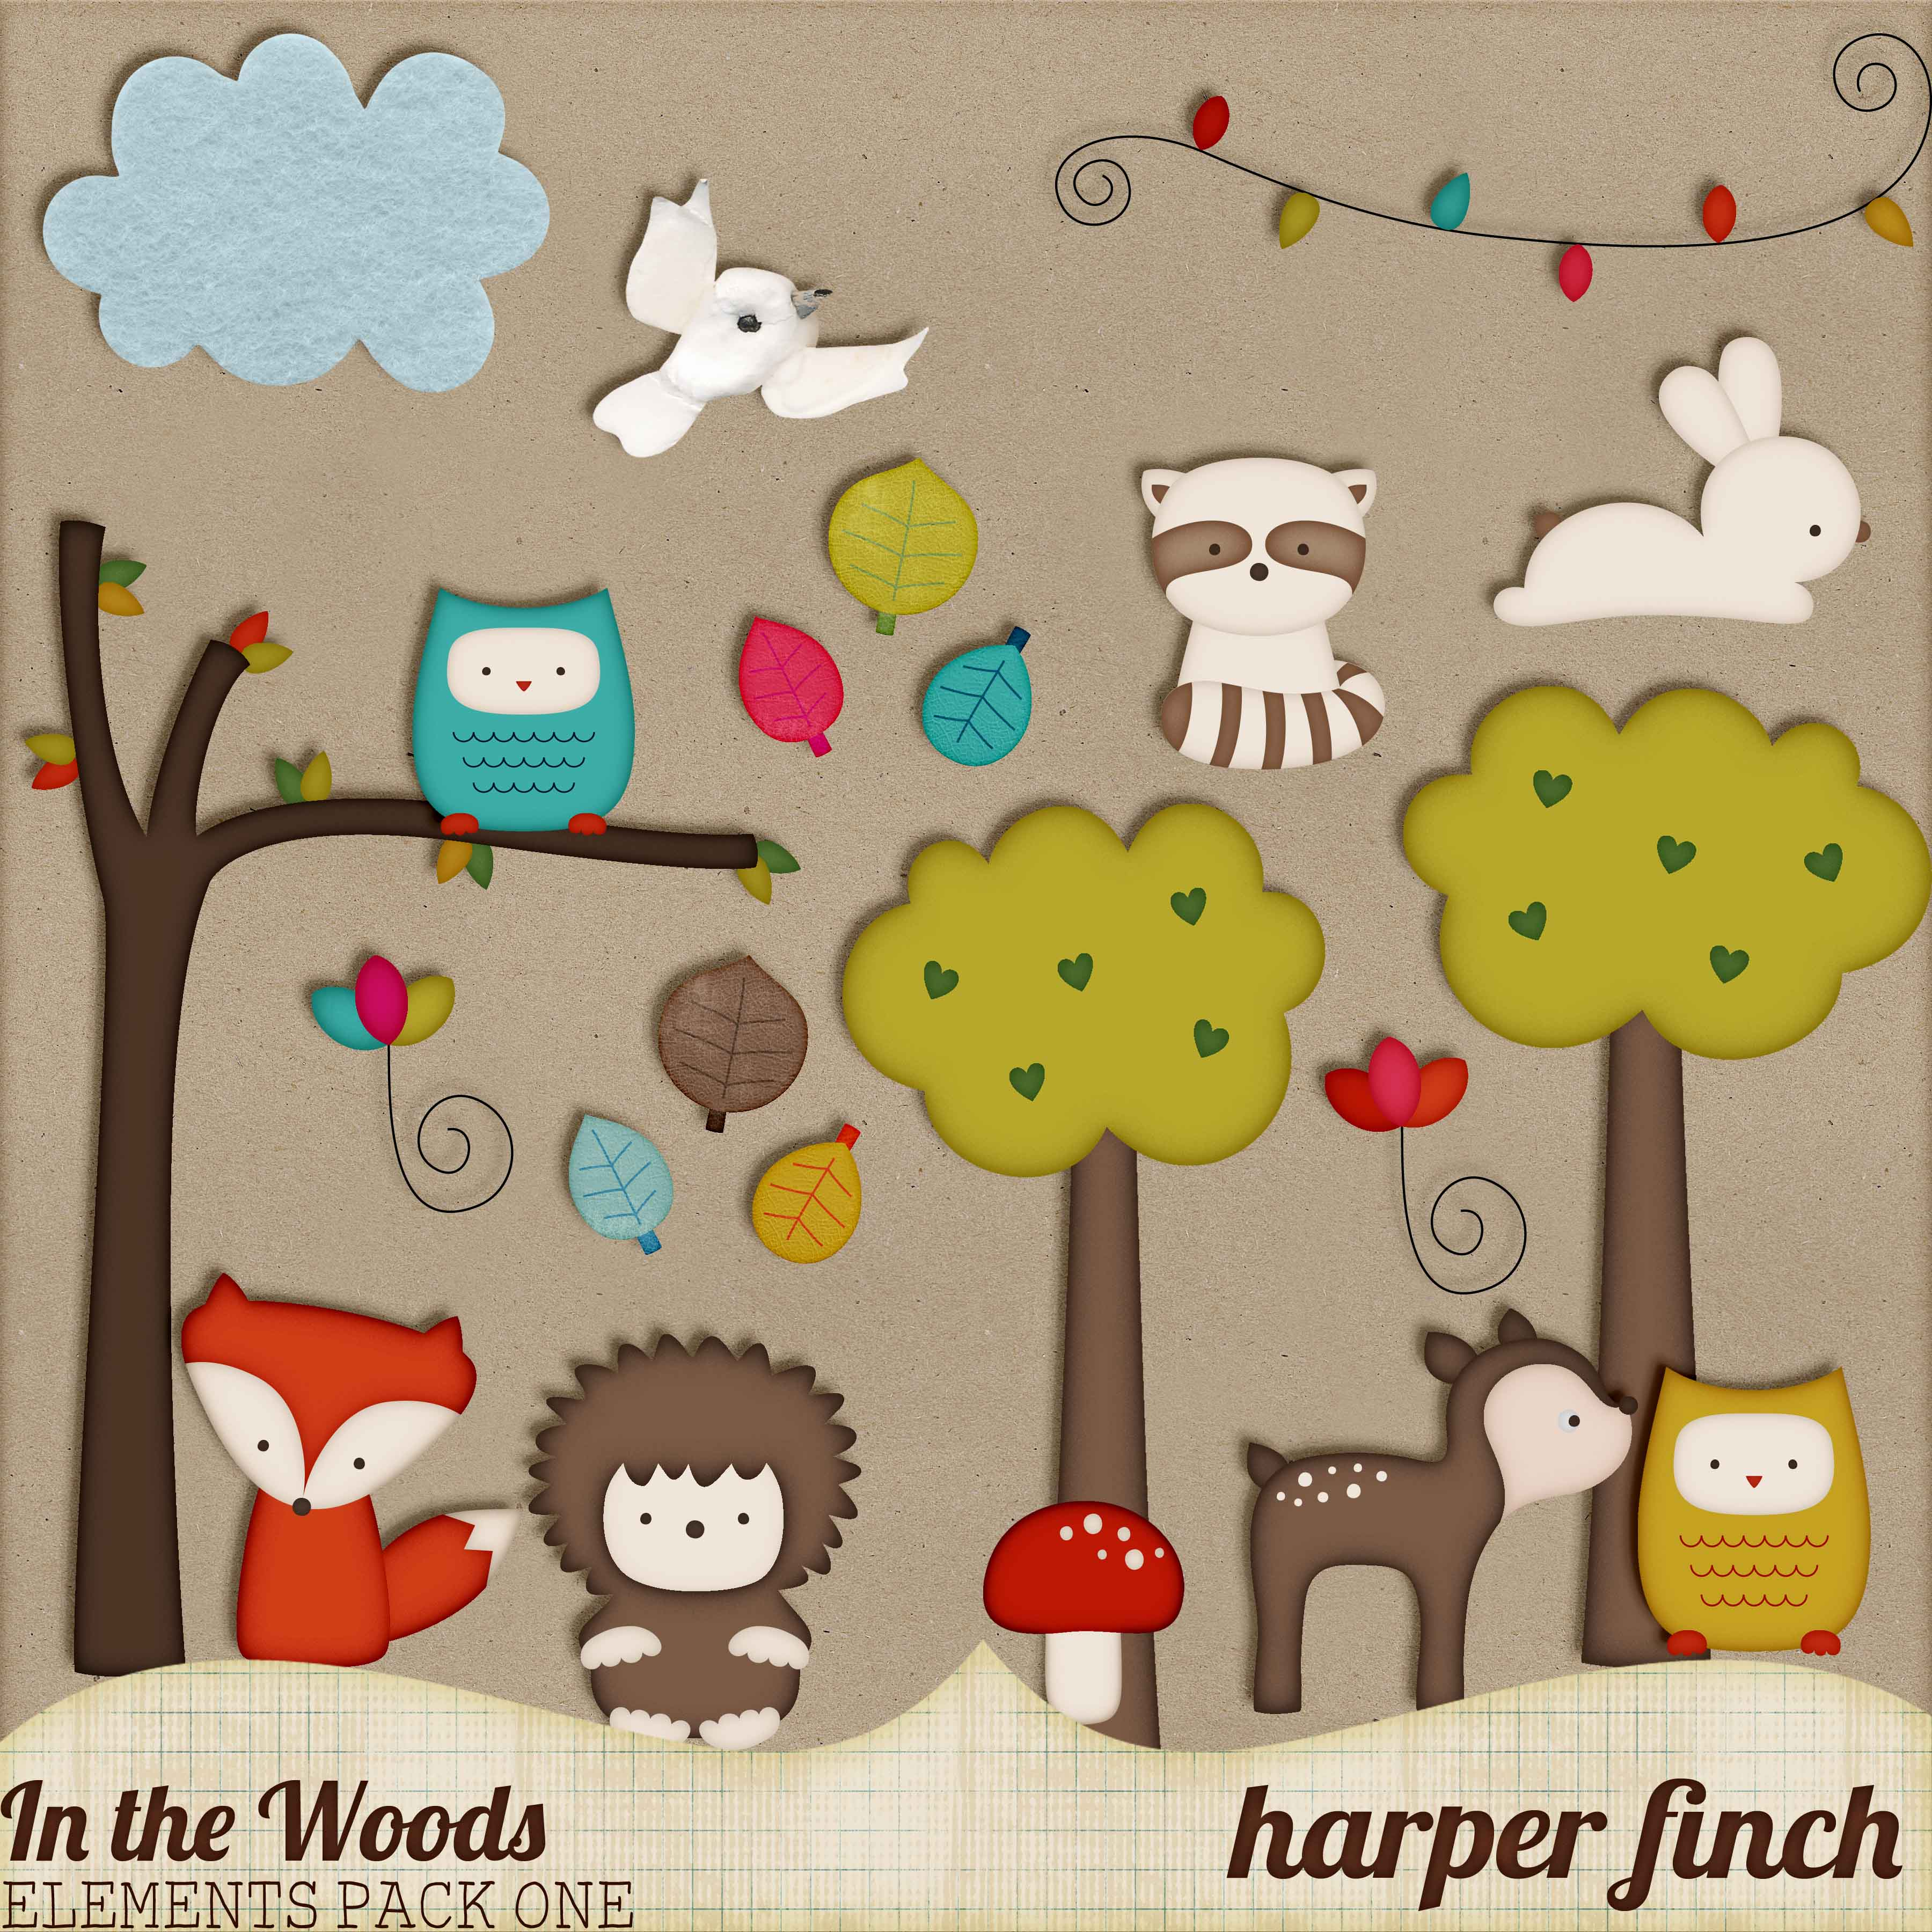 In the Woods Elements Pack One by Harper Finch by harperfinch